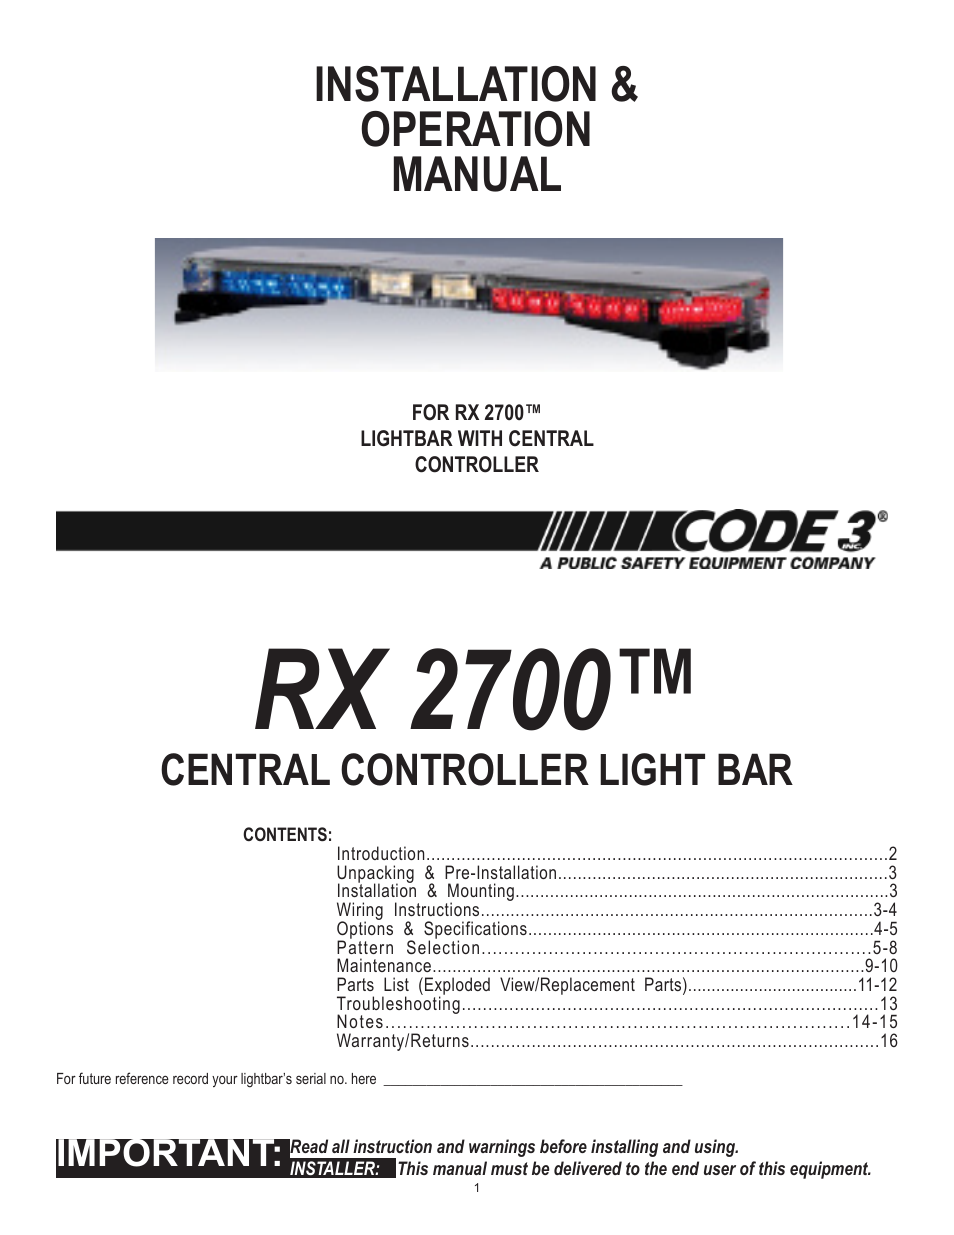 code 3 rx 2700cc page1 code 3 arrowstik wiring diagram code wiring diagrams collection code 3 supervisor wiring diagram at aneh.co